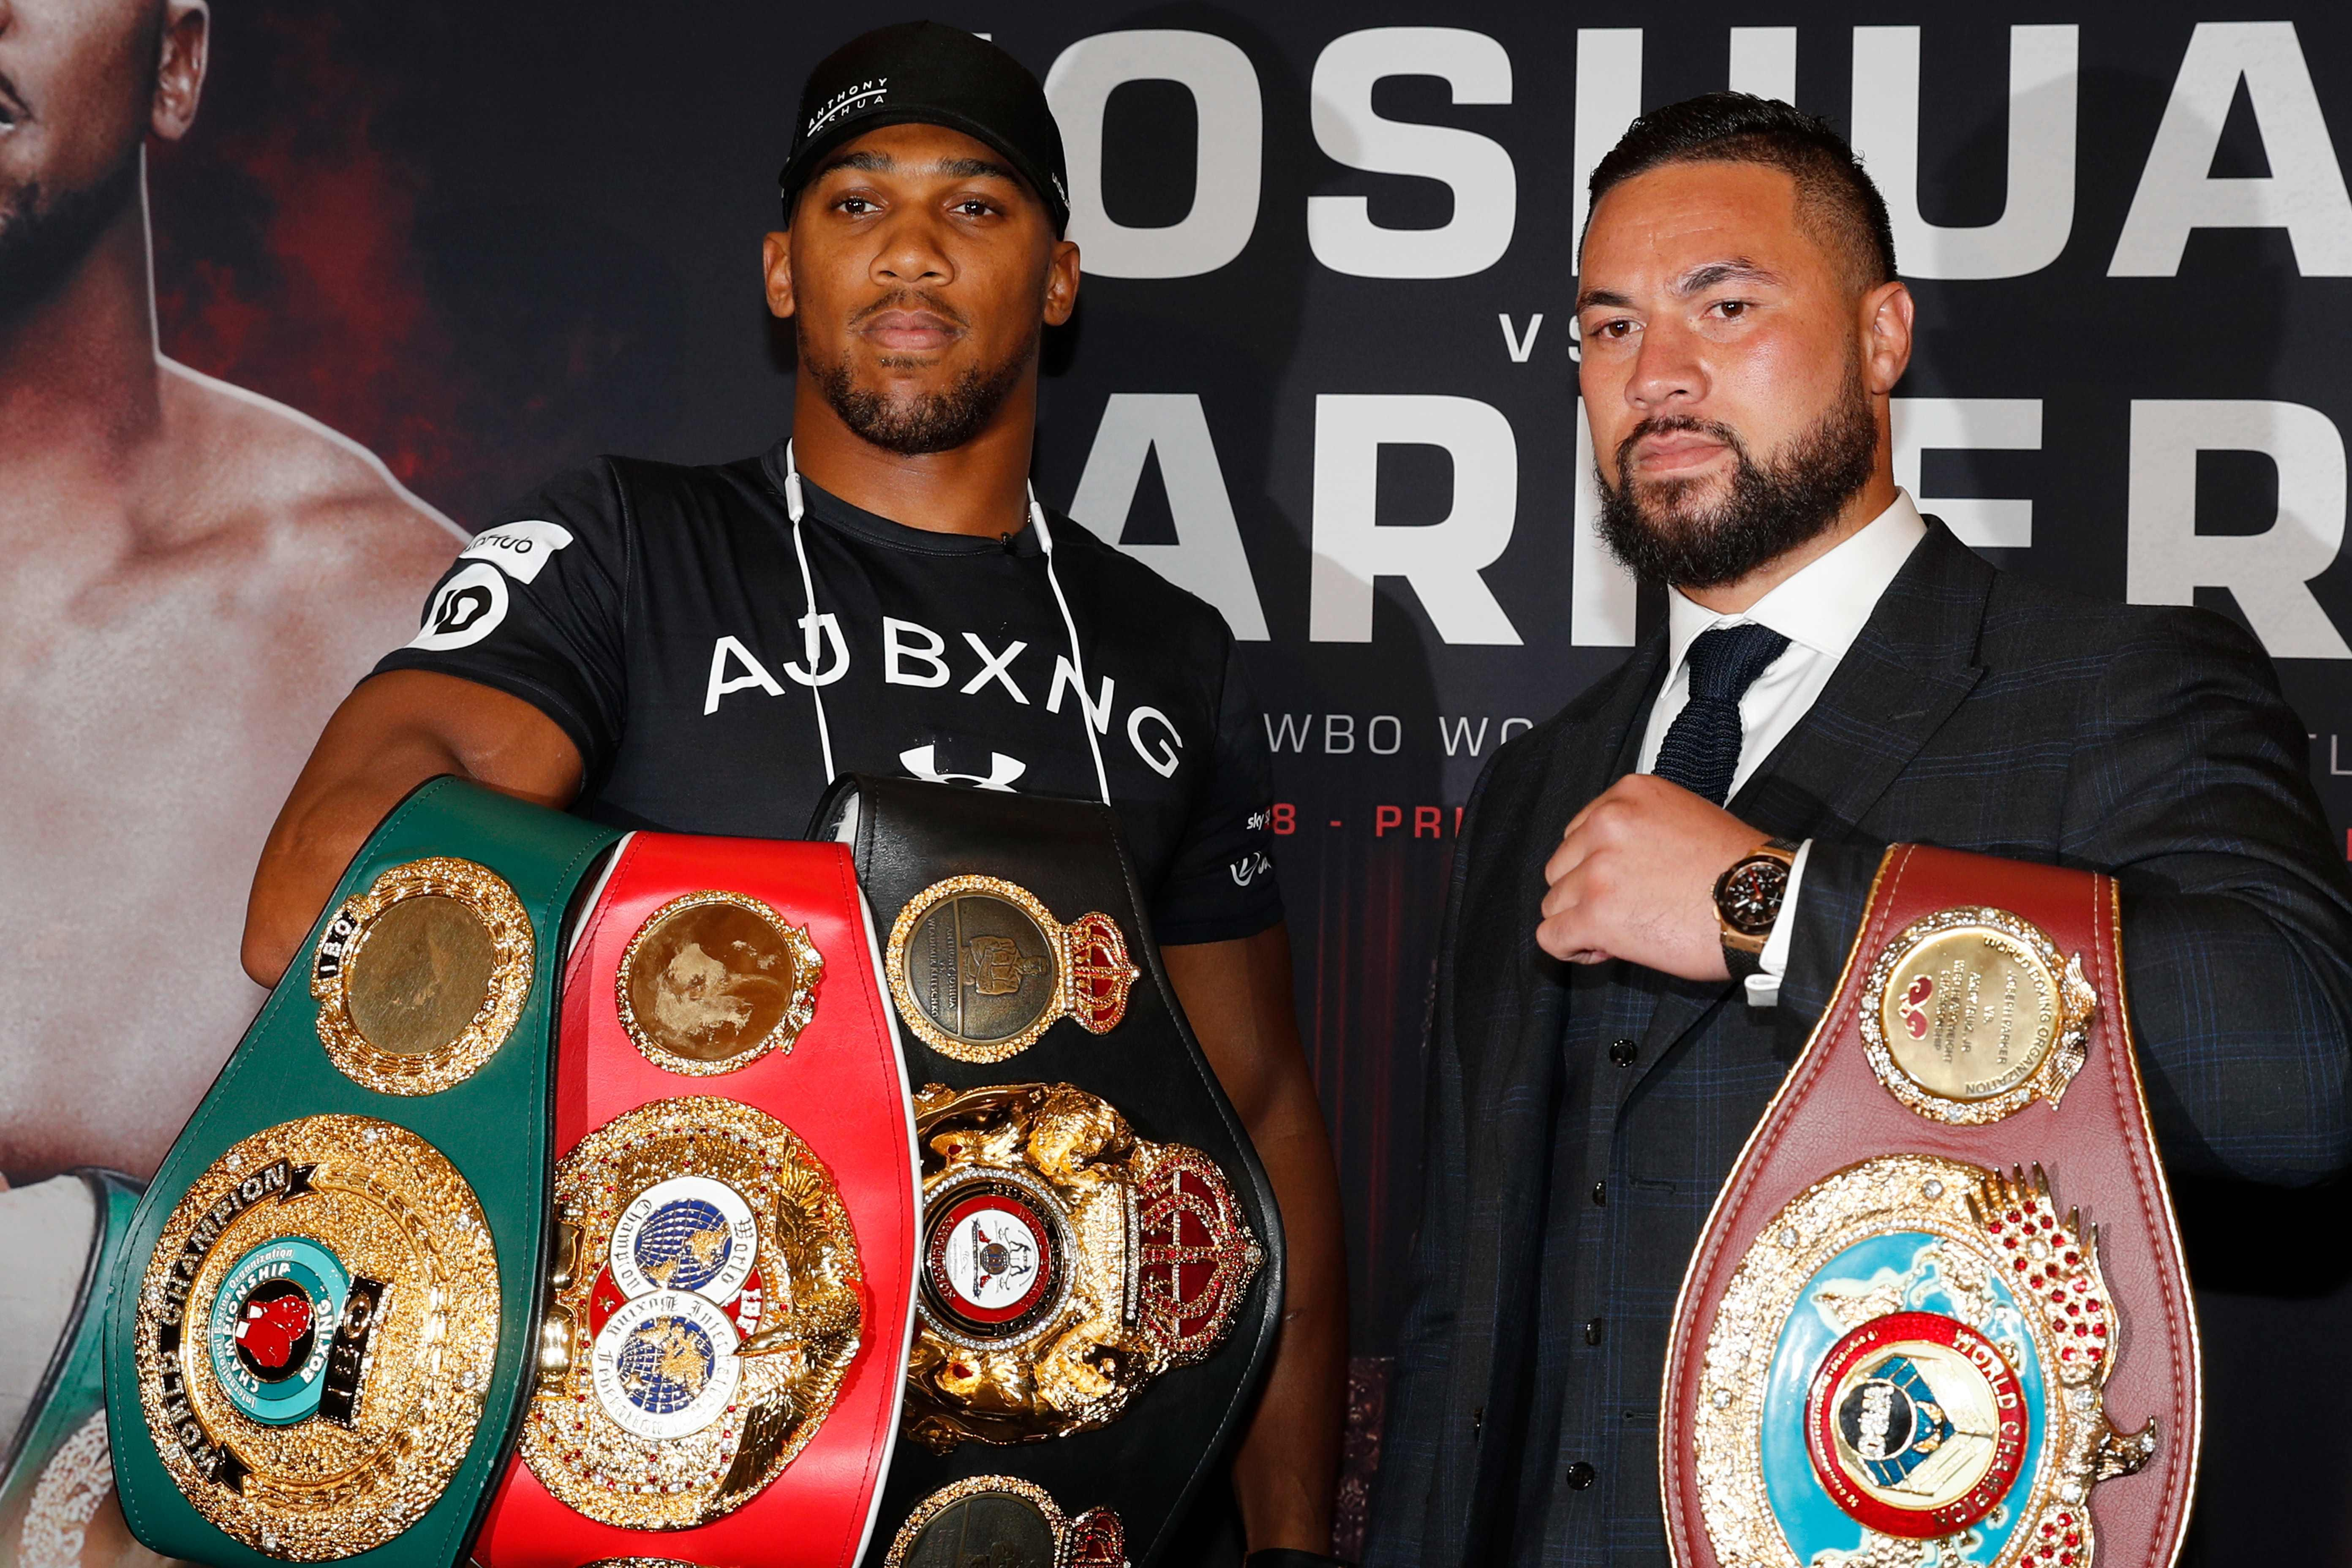 The pair are both unbeaten going into the fight